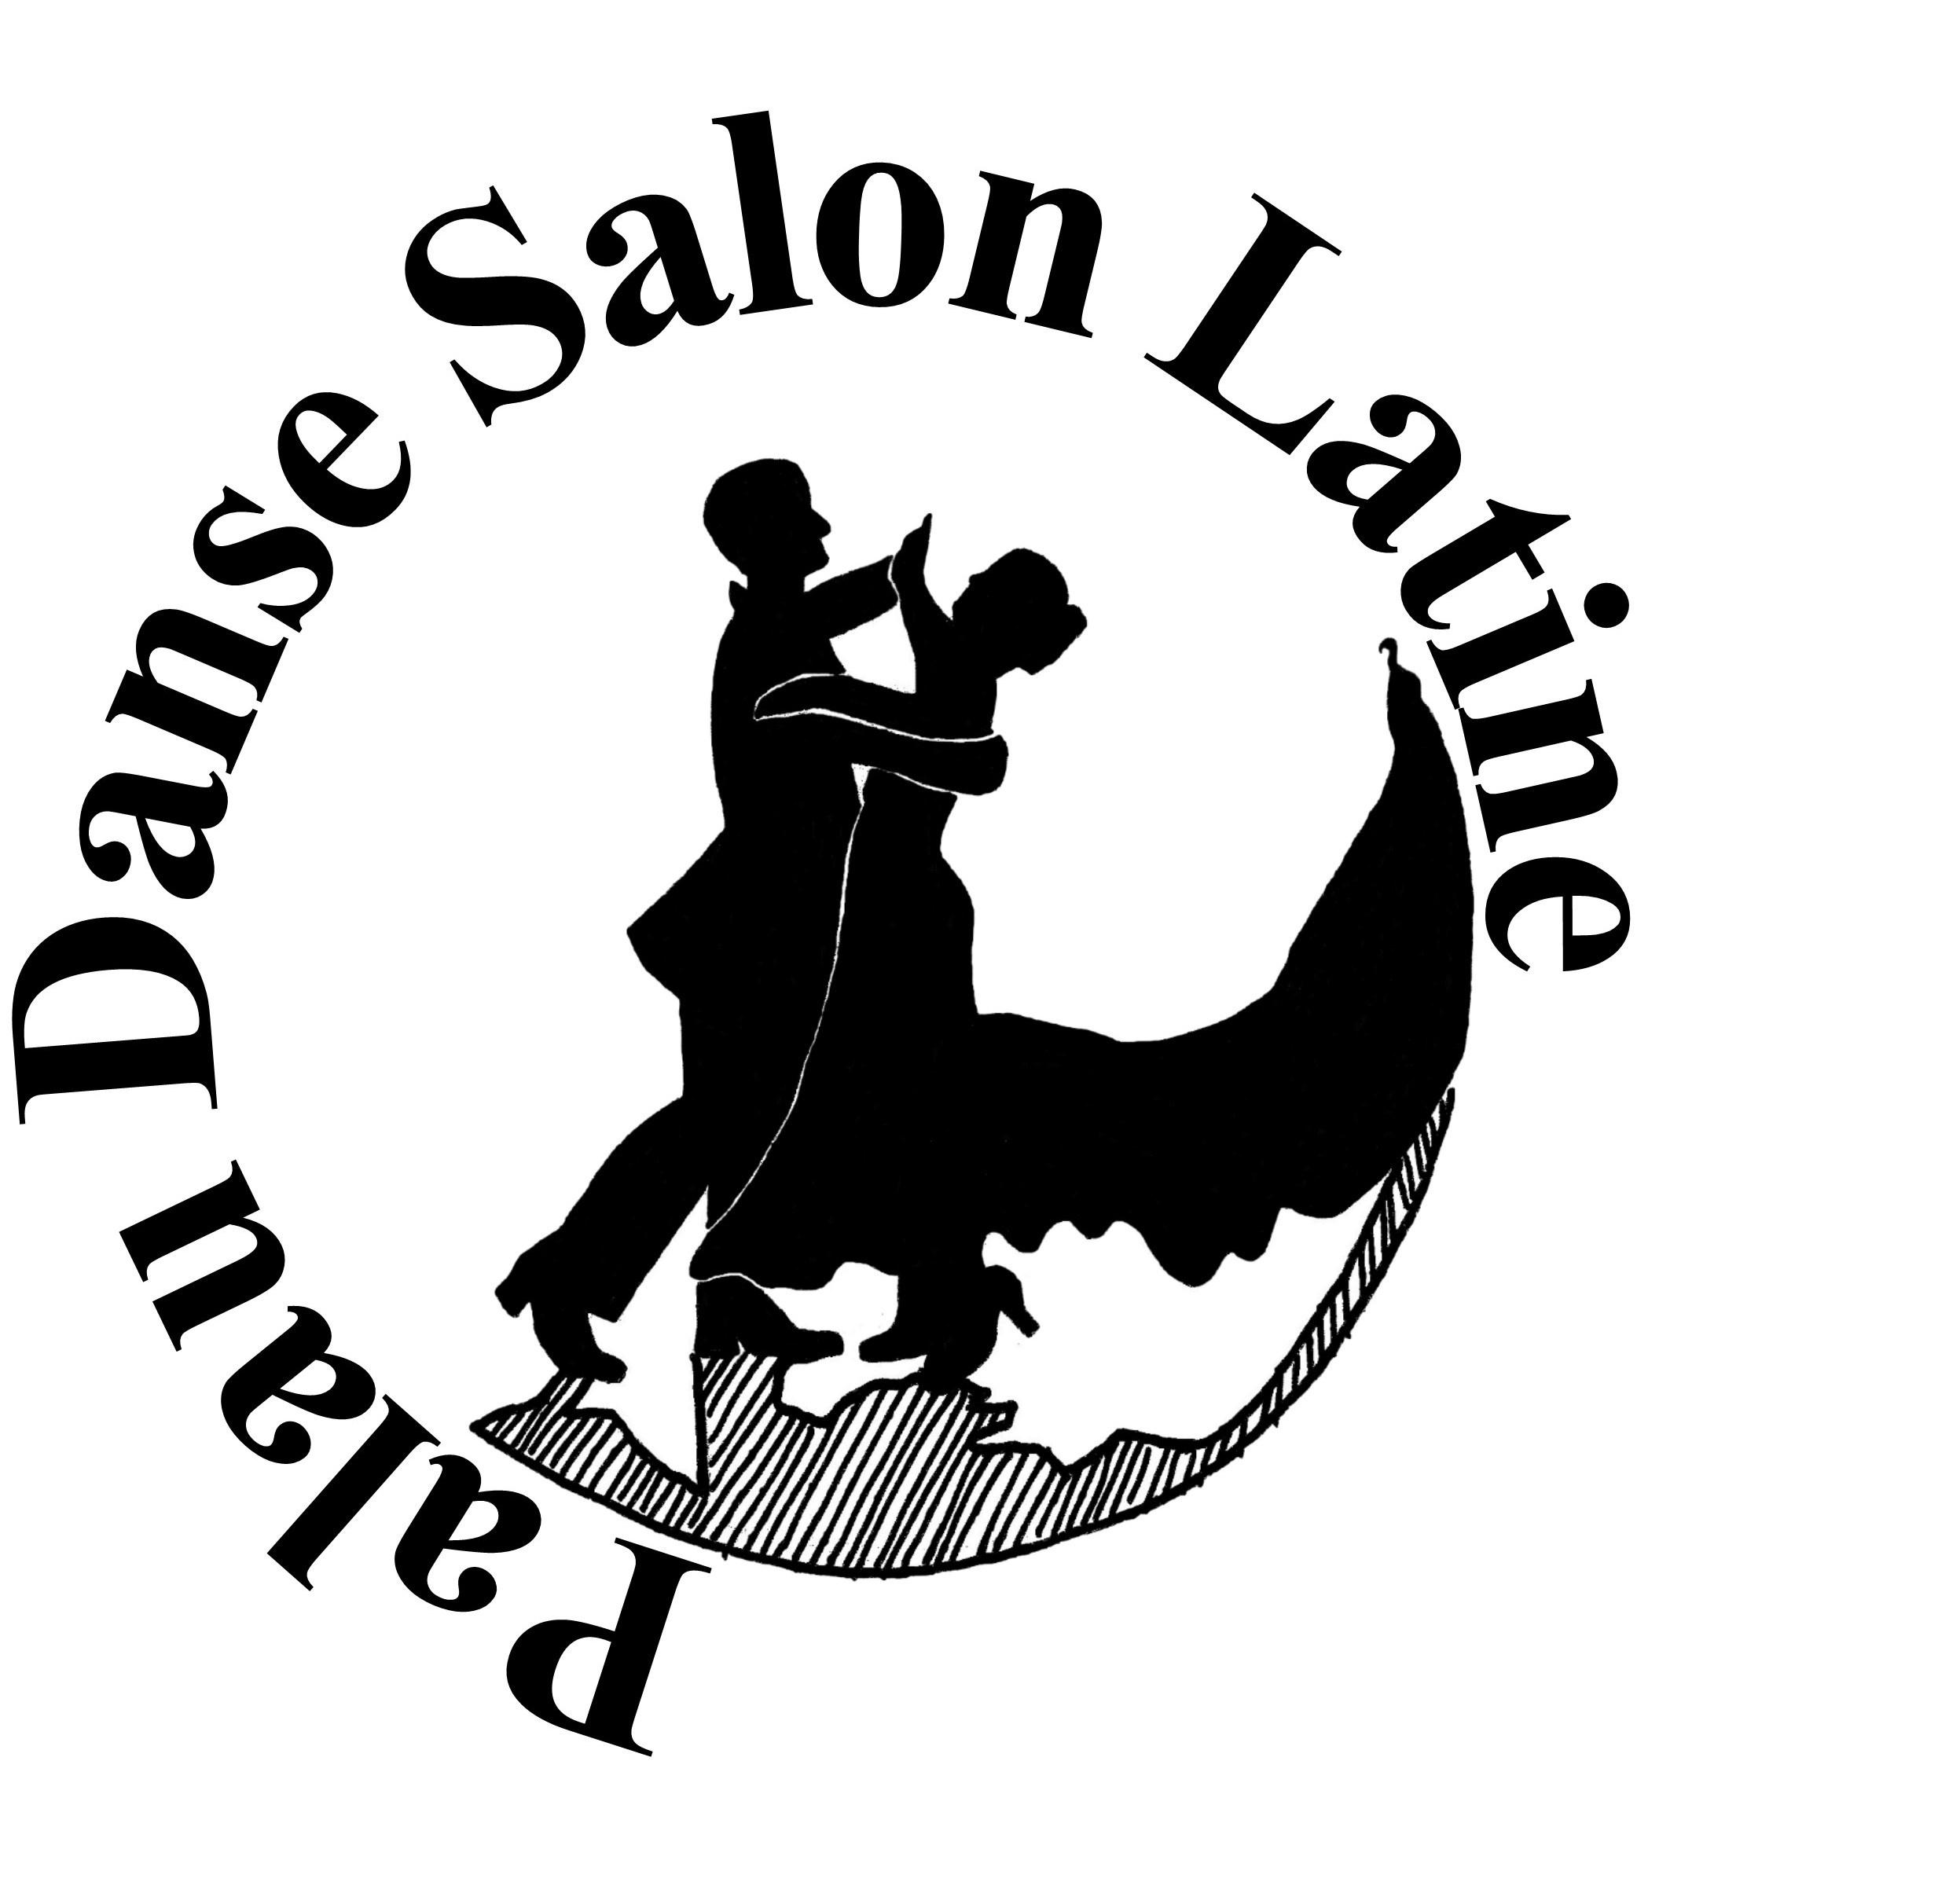 PALAU DANSE SALON LATINE